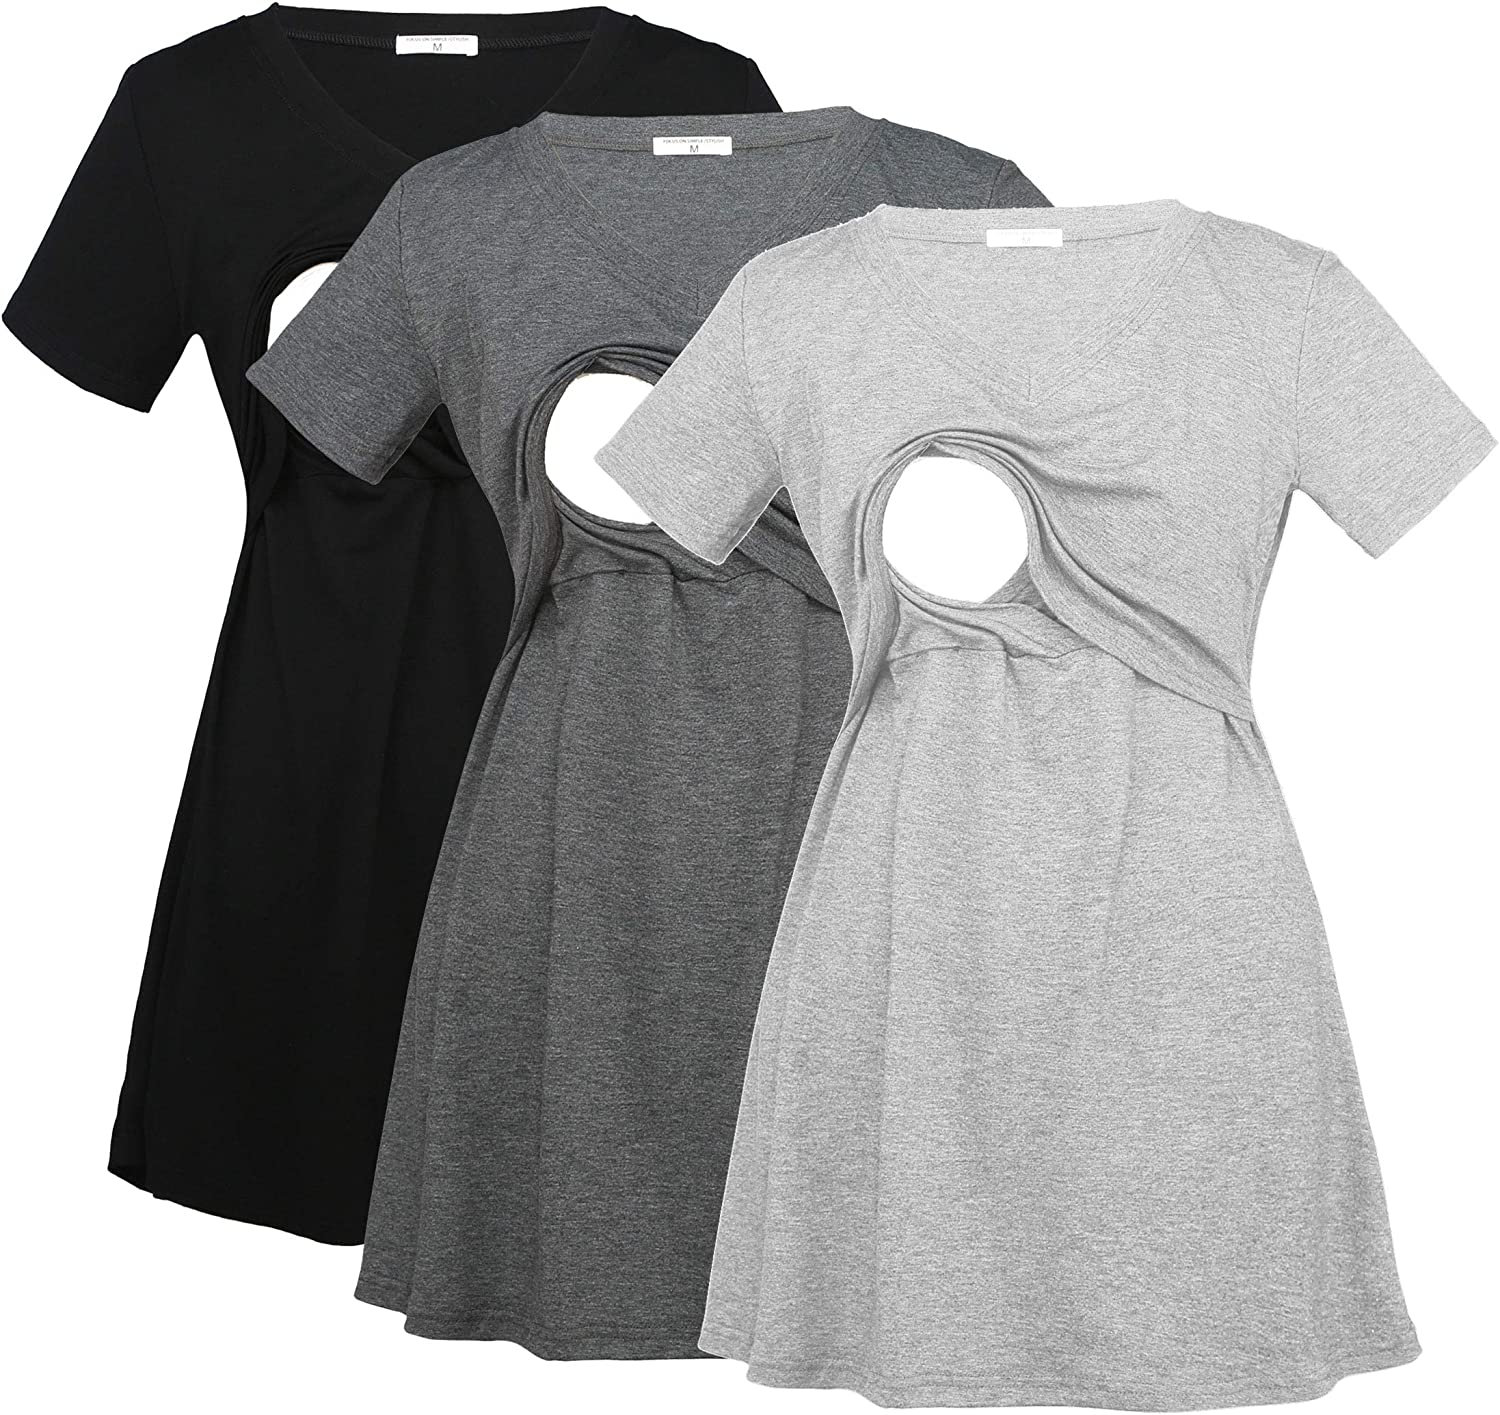 Bearsland Womens 3 Packs V Neck Nursing Tops Maternity Breastfeeding Tee Shirts